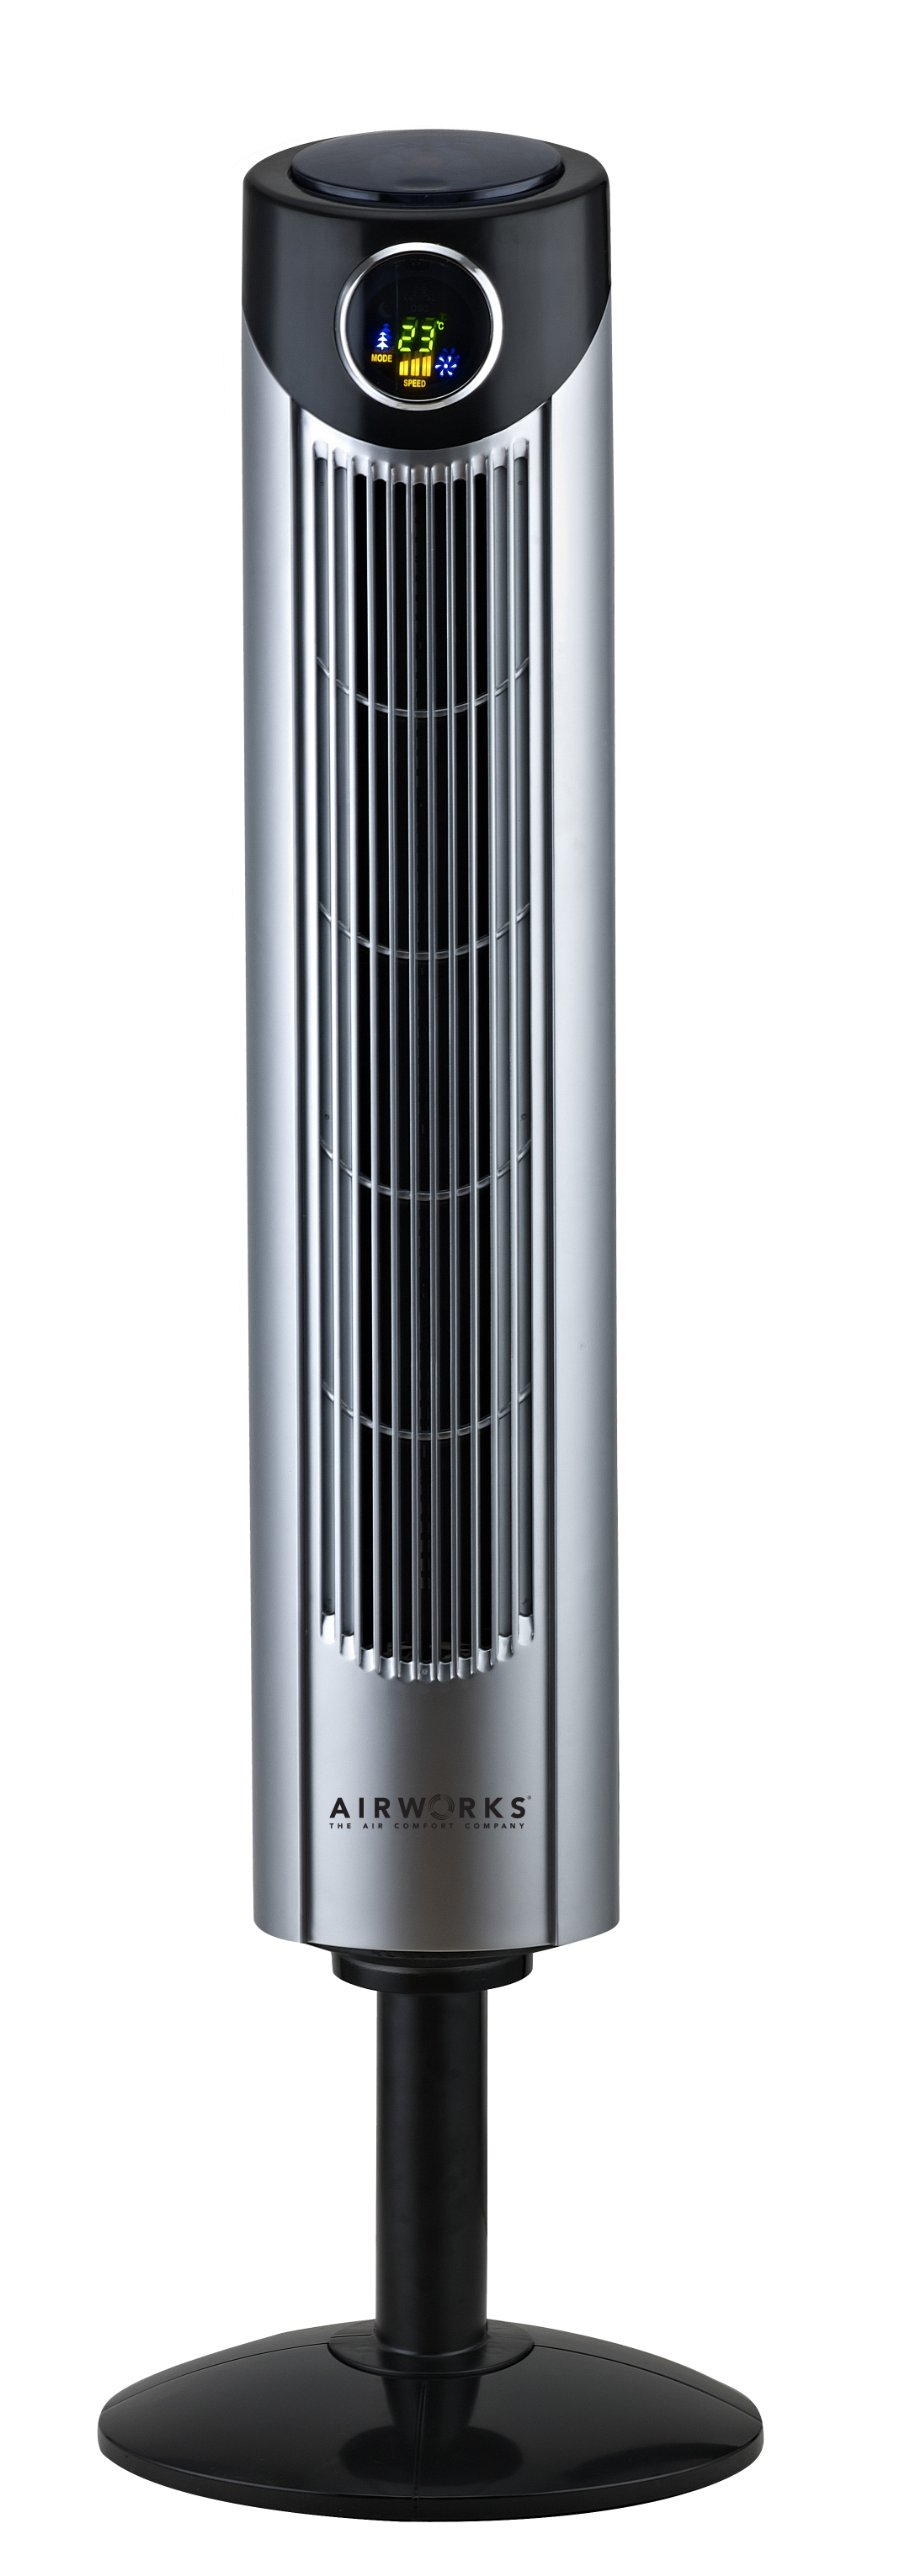 Airworks 42'' tower fan with remote control